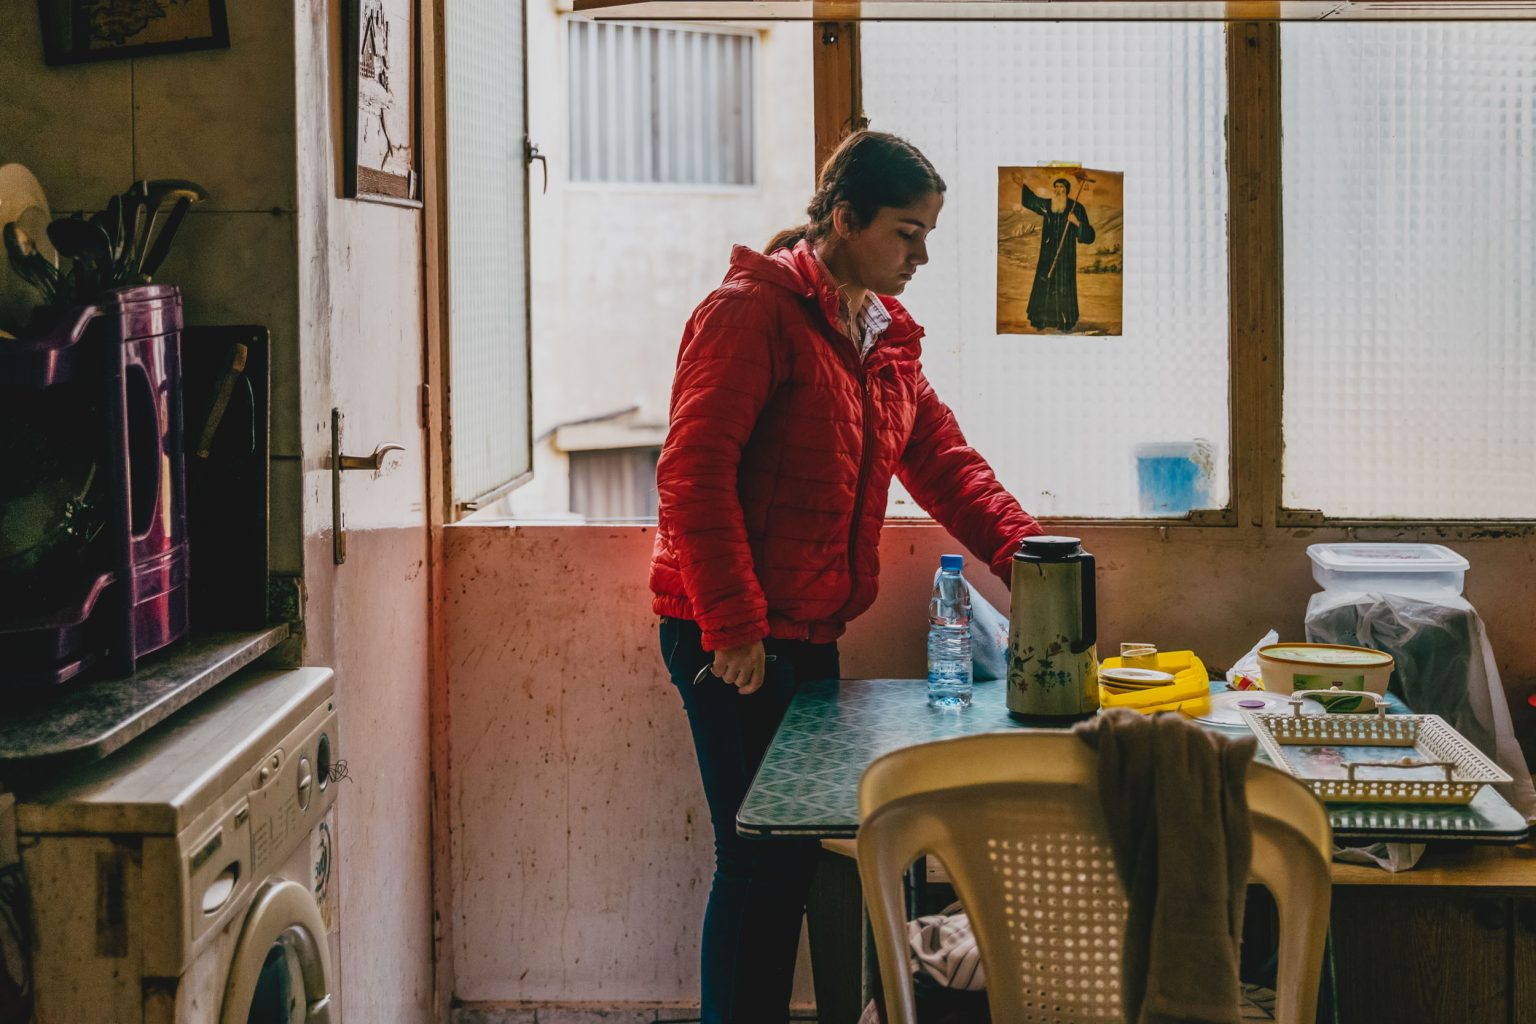 FORCES TO FLEE DAESH: CHRISTIAN  REFUGEE IN THE COLLECTIVE KITCHEN SHARED WITH ANOTHER IRAQI FAMILY, BEIRUT, LEBANON